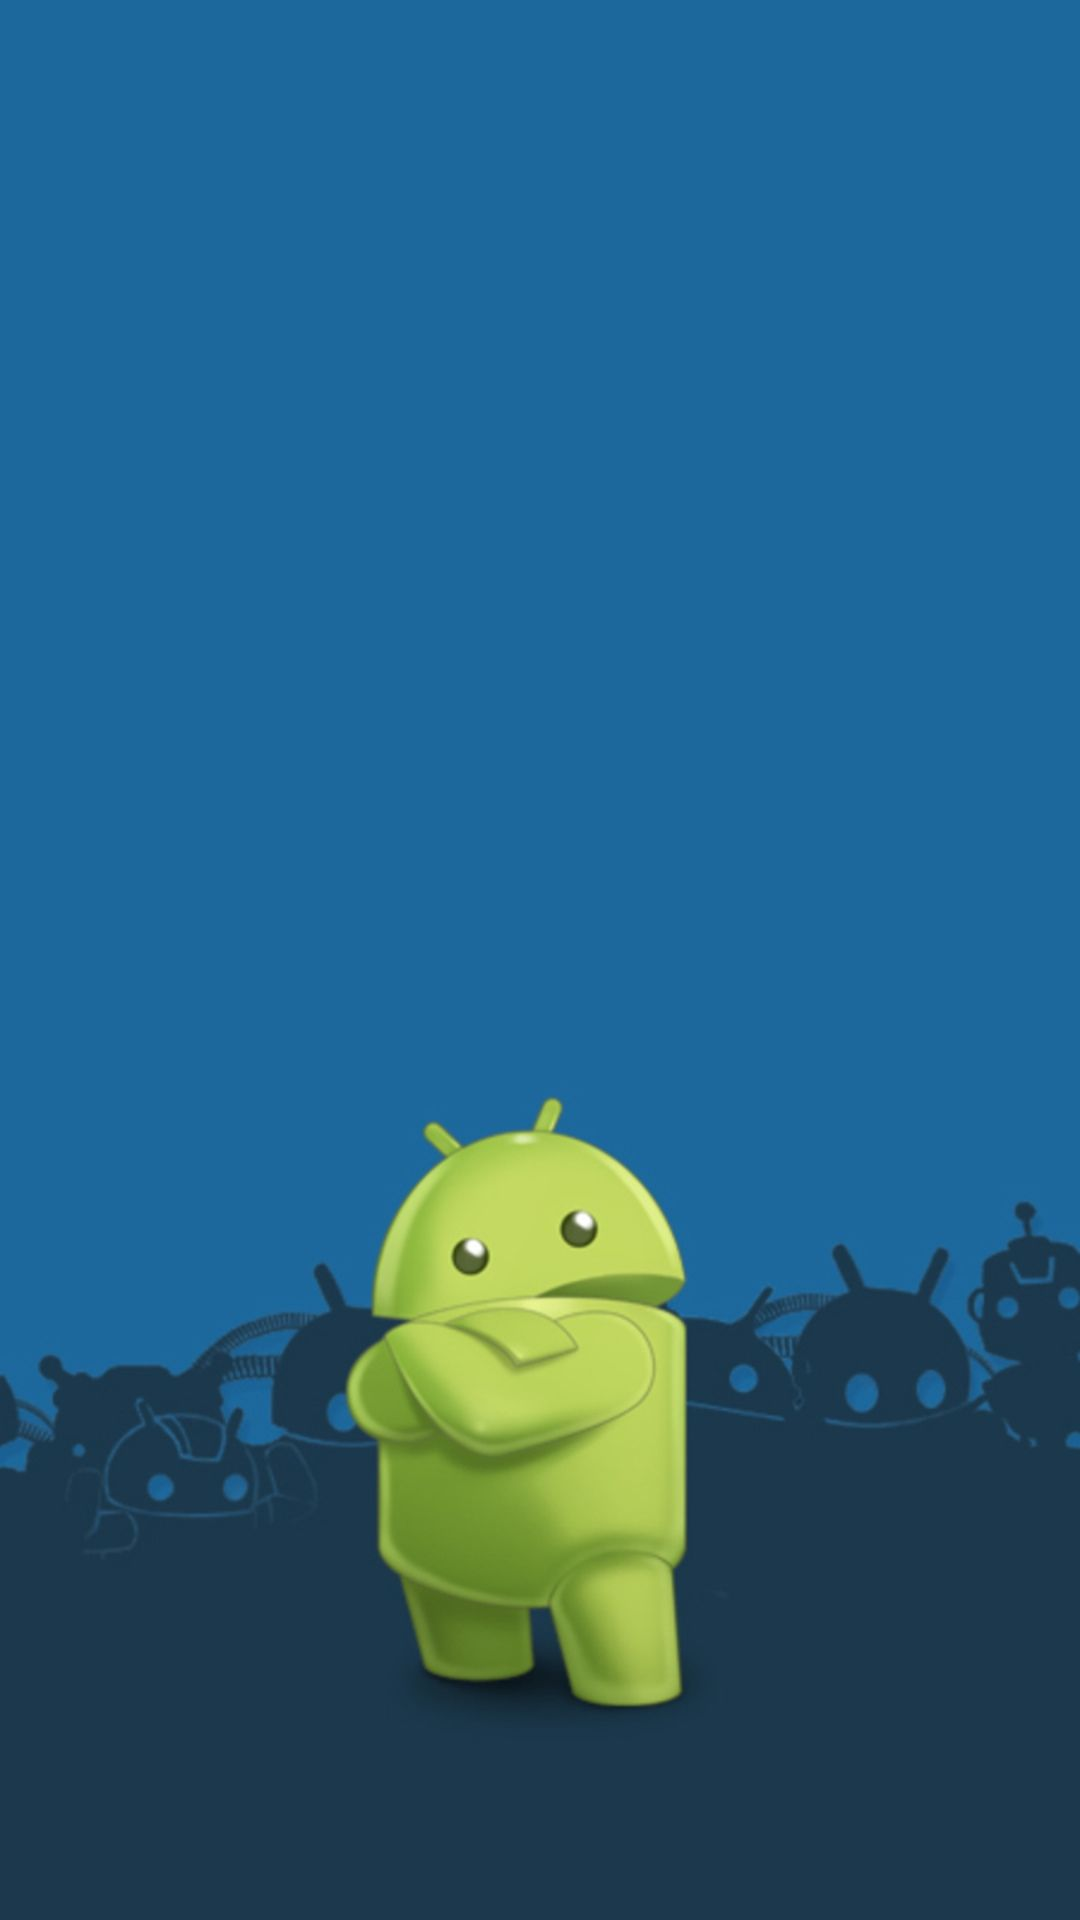 1080x1920 Cool Android Logo Android Smartphone Wallpaper ⋆ GetPhotos